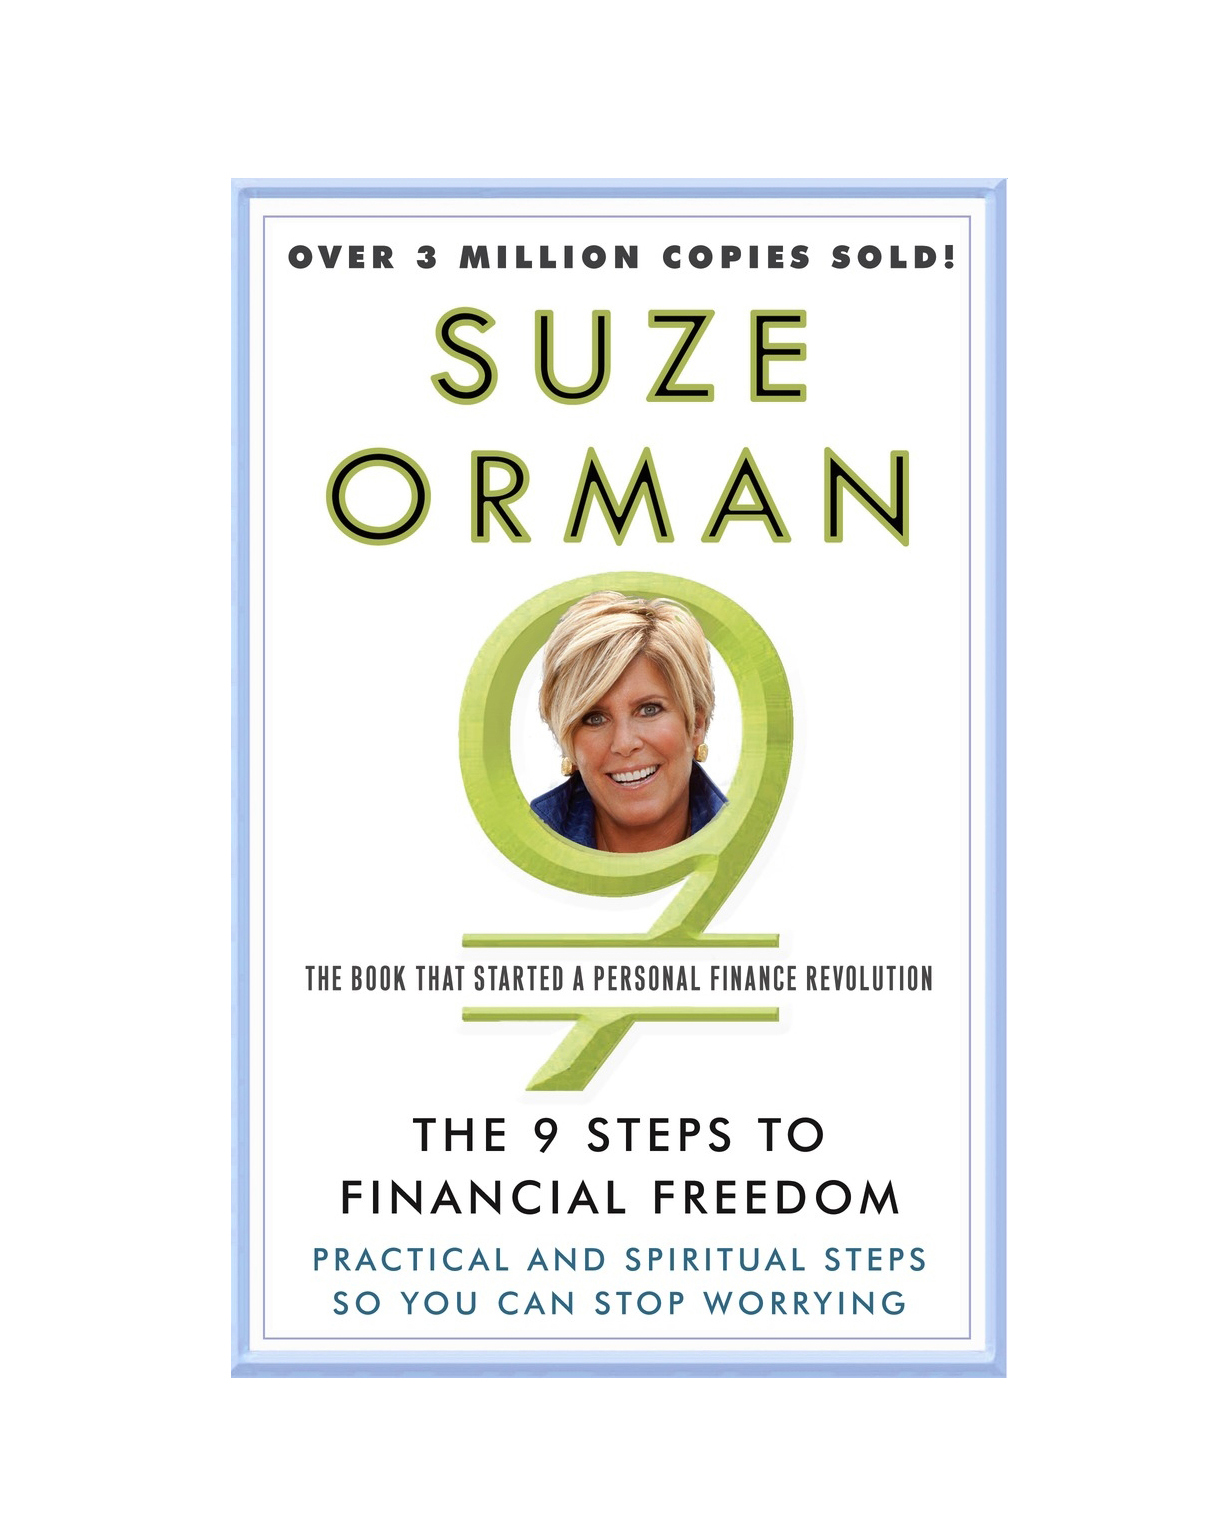 books-for-newlyweds-suze-orman-the-9-steps-to-financial-freedom-0415.jpg